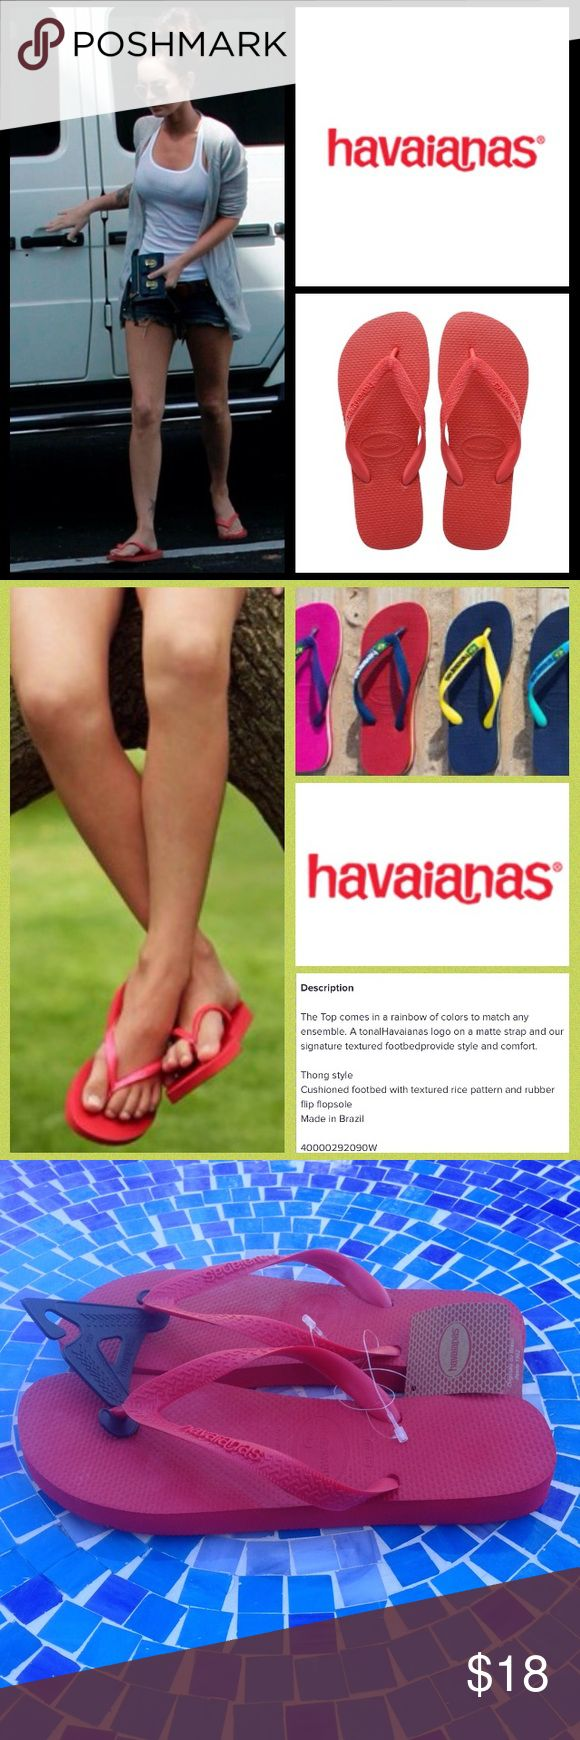 NEW!  Havaianas Top flip-flop sandals in Ruby red Brand new, ultra-pretty Havaianas flip-flops are the ultimate footwear for all-day wear!  These sandals are shock absorbing, super comfy & the gorgeous shade of Ruby red will add a pop of color to all your warmer weather attire!  The classic style is an iconic look that will never go out of style & they are brand new, never worn with tags attached!  Worn by so many celebs!  No trades please. Havaianas Shoes Sandals